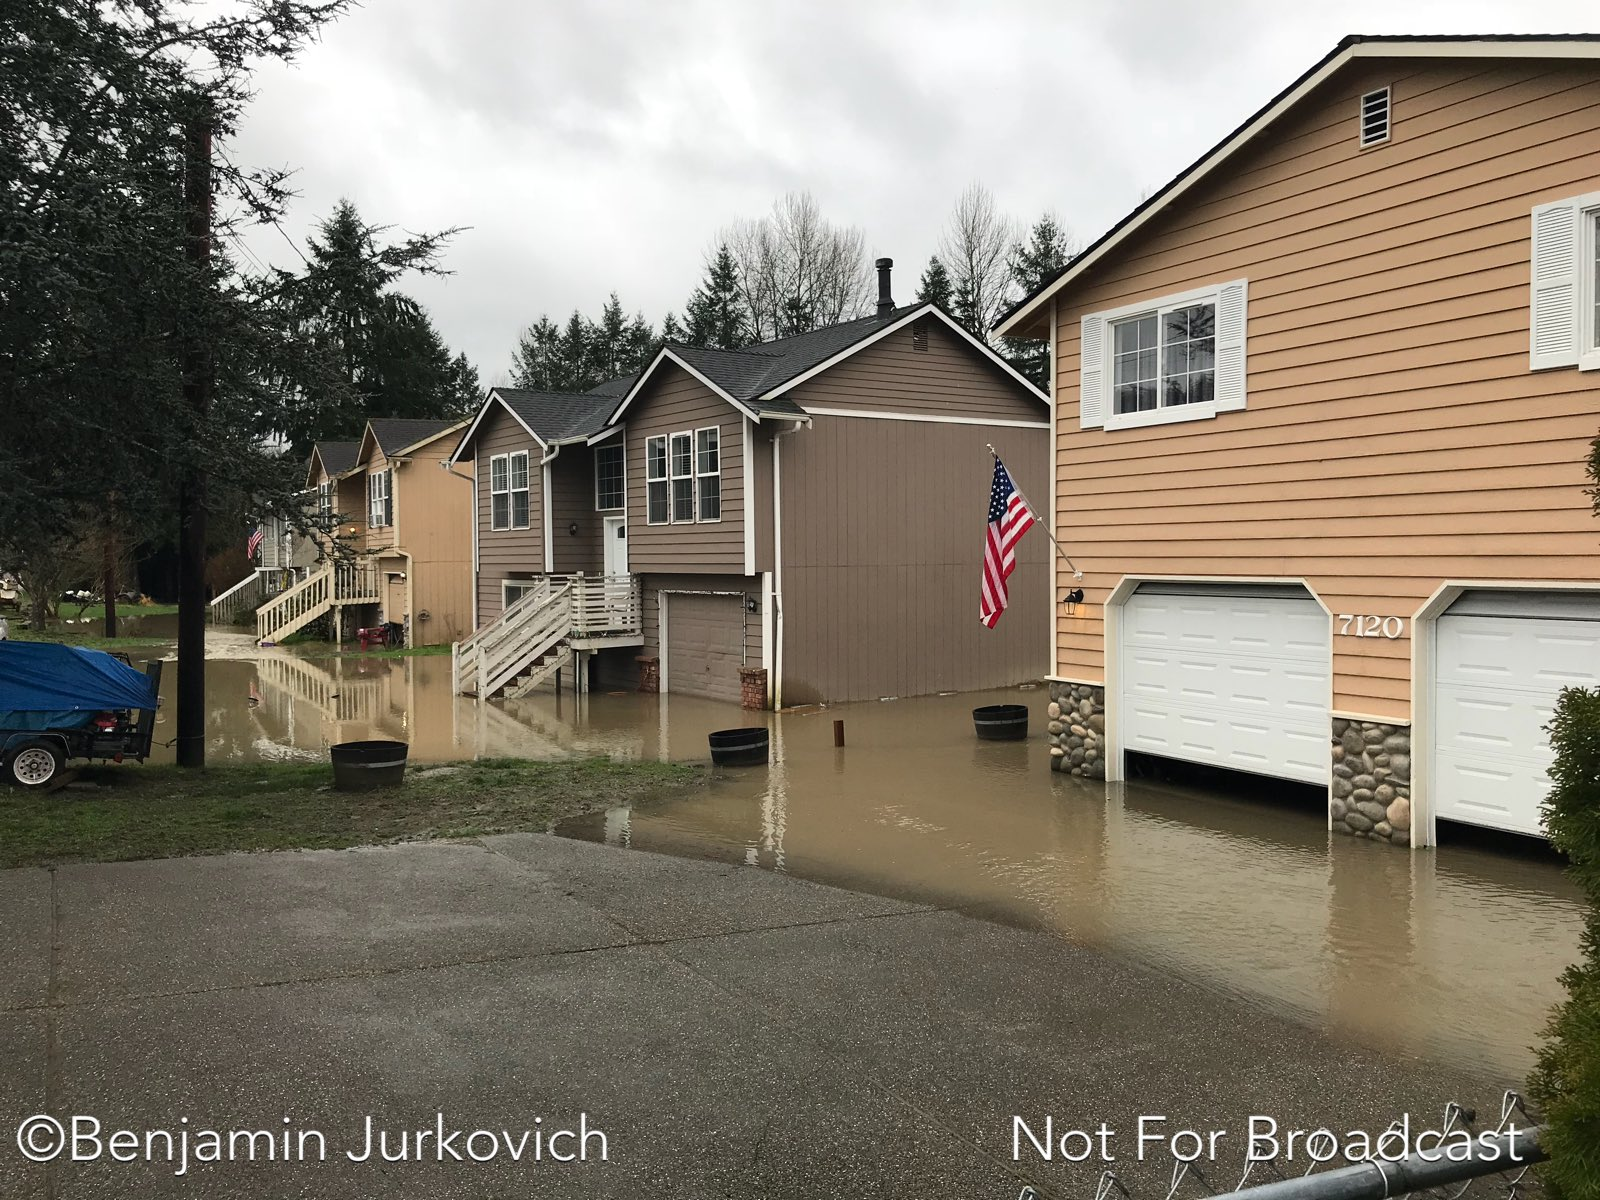 Pilchuck River is flooding homes on Sexton Road in Snohomish Wa (Photo: Benjamin Jurkovich, used with permission)